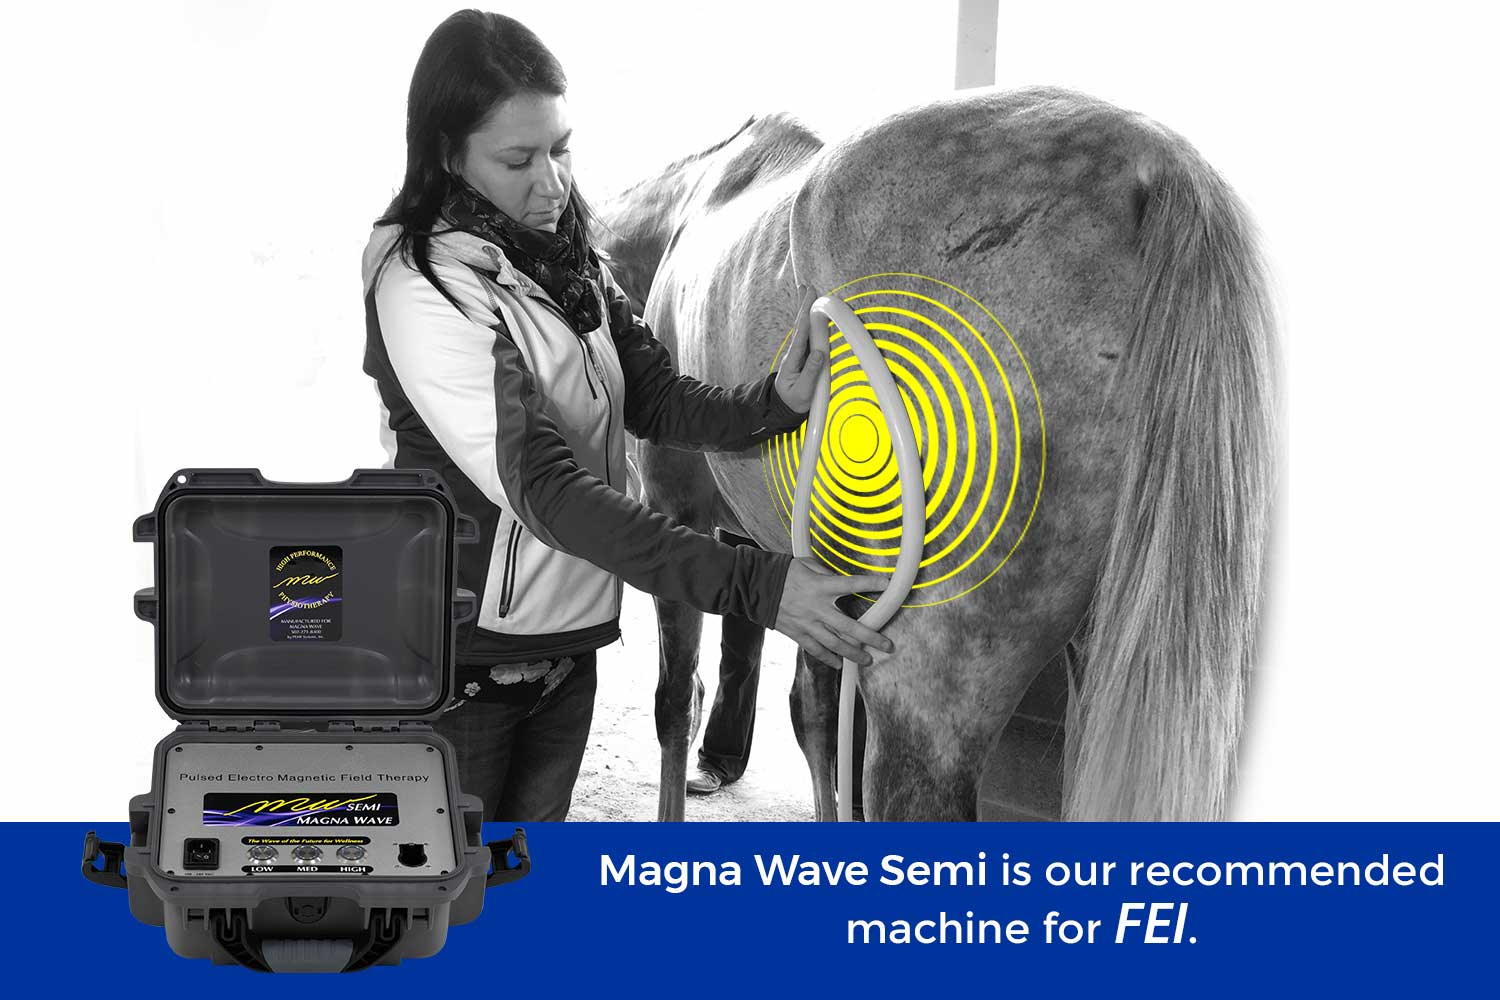 Magna Wave Semi is our recommended machines for FEI.